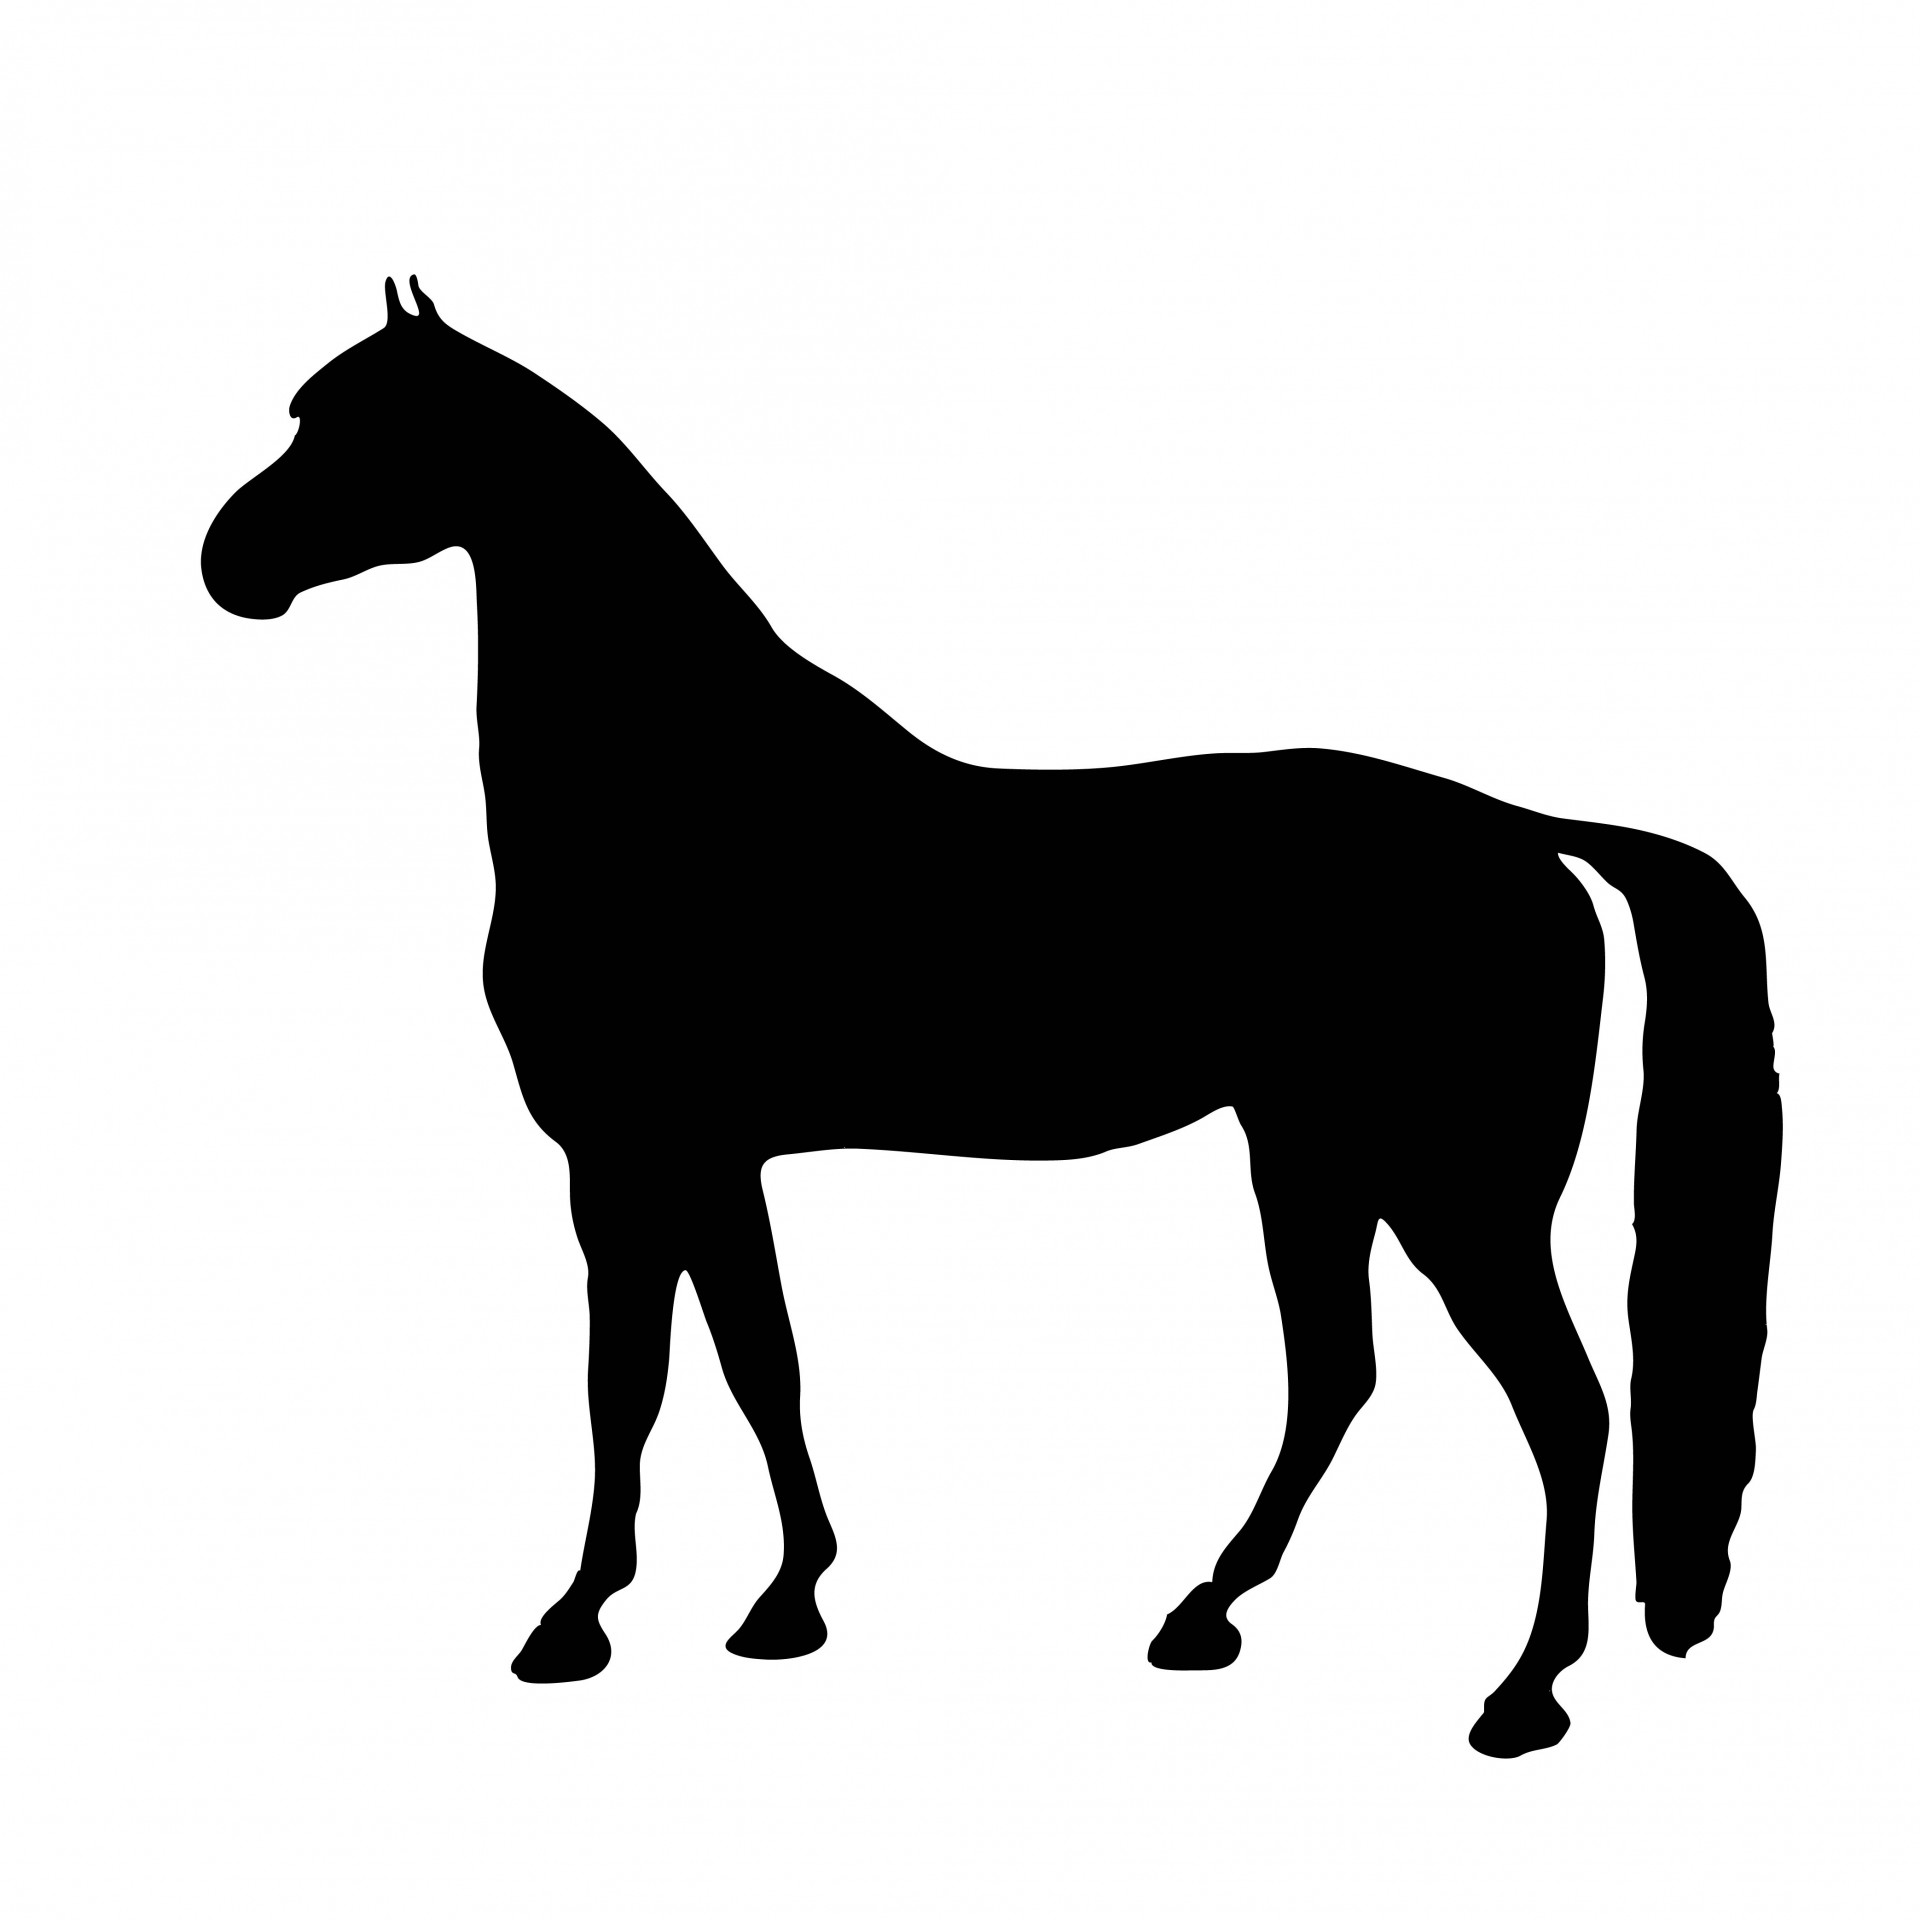 Thoroughbred clipart - Clipground